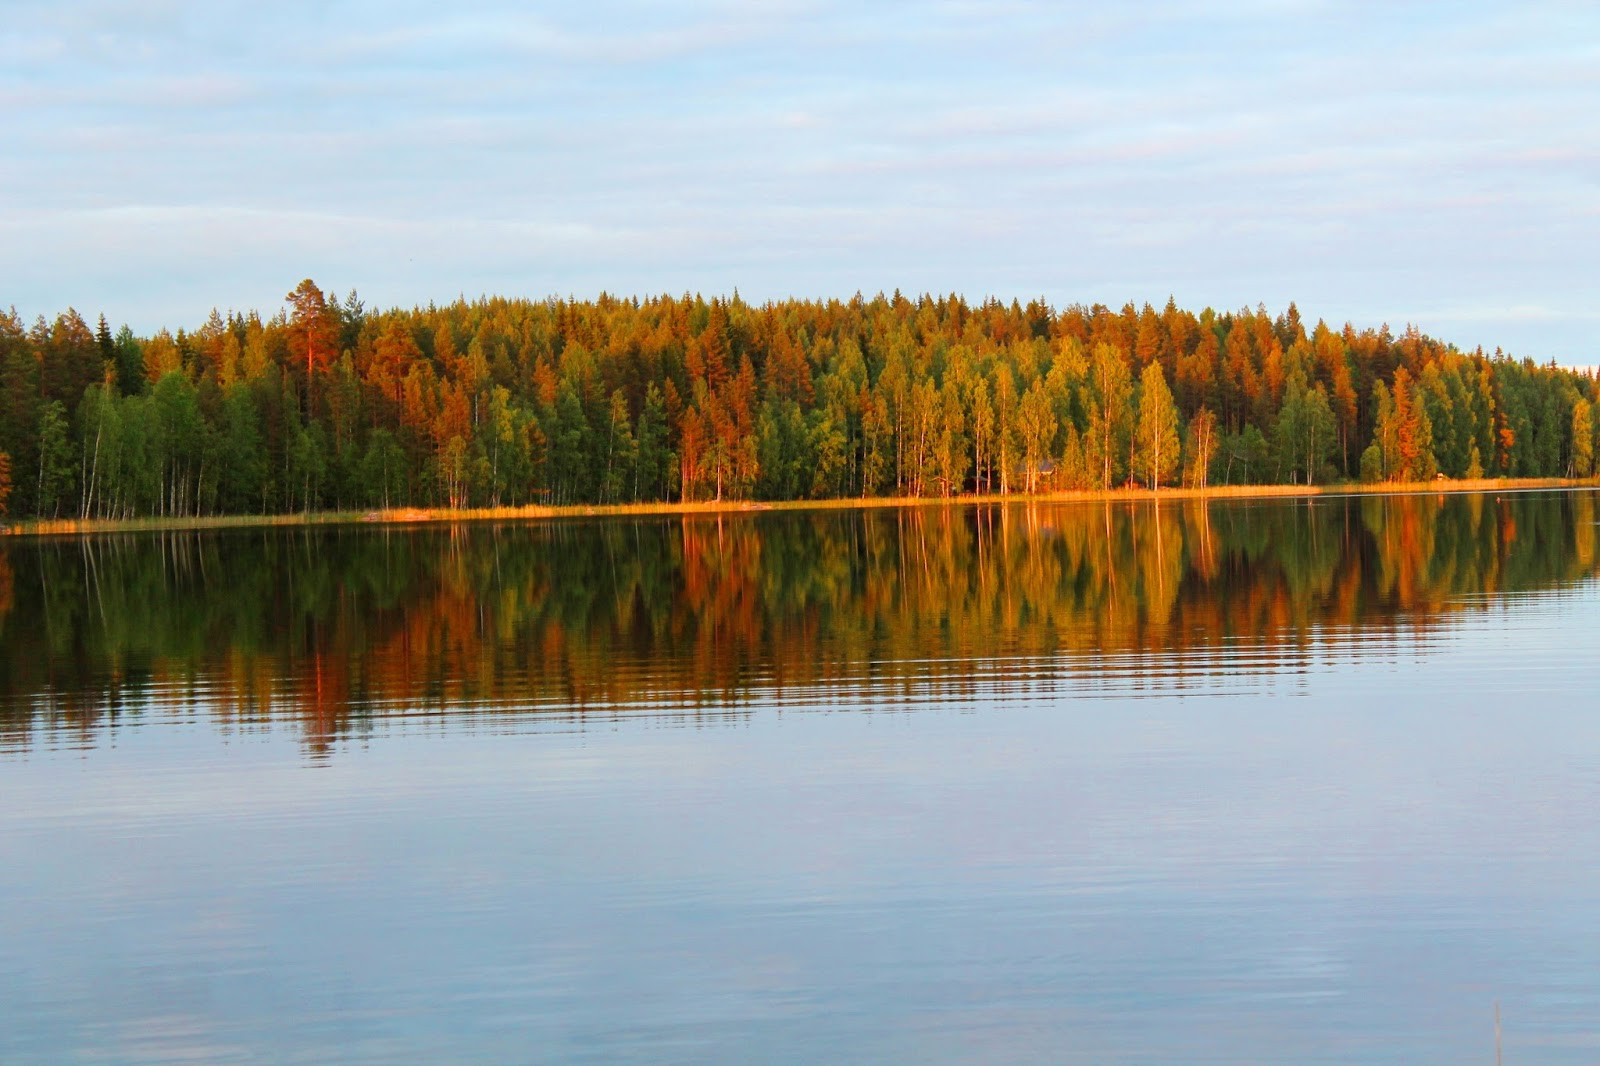 #forest #lake #reflection #red #summer #autumn #fall #finland #visitfinland